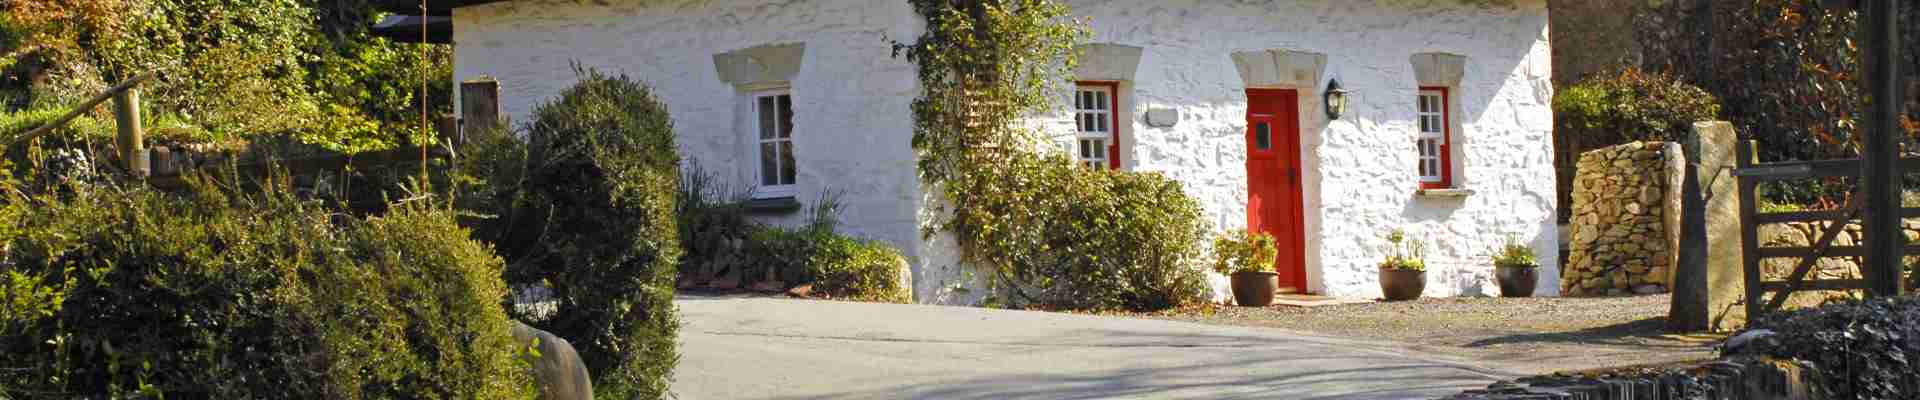 Fairytale Welsh Holiday Cottages